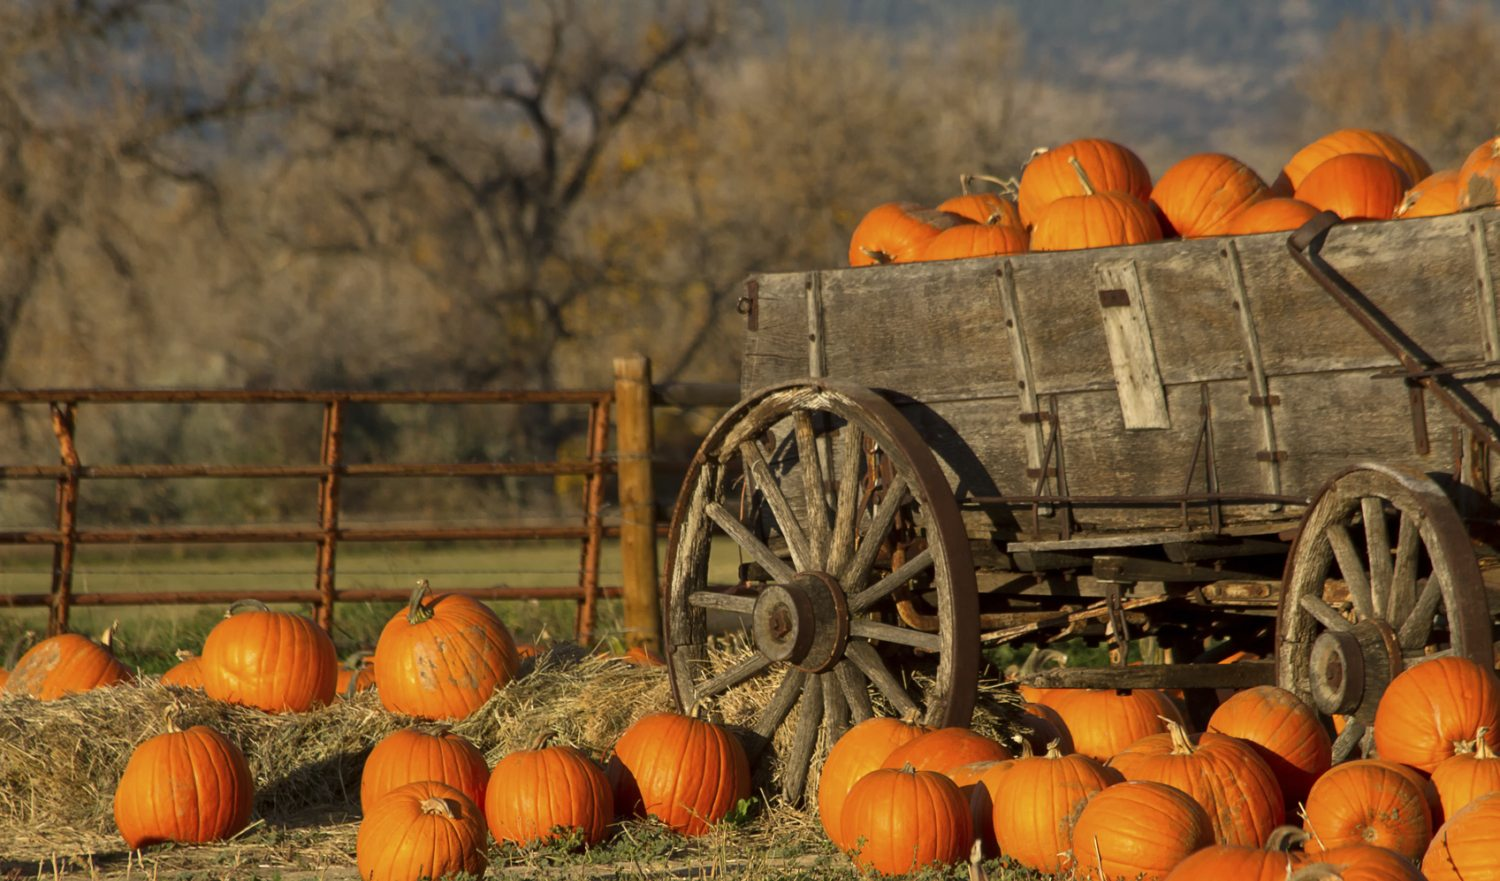 An old rustic cart filled with pumpkins on a fall day